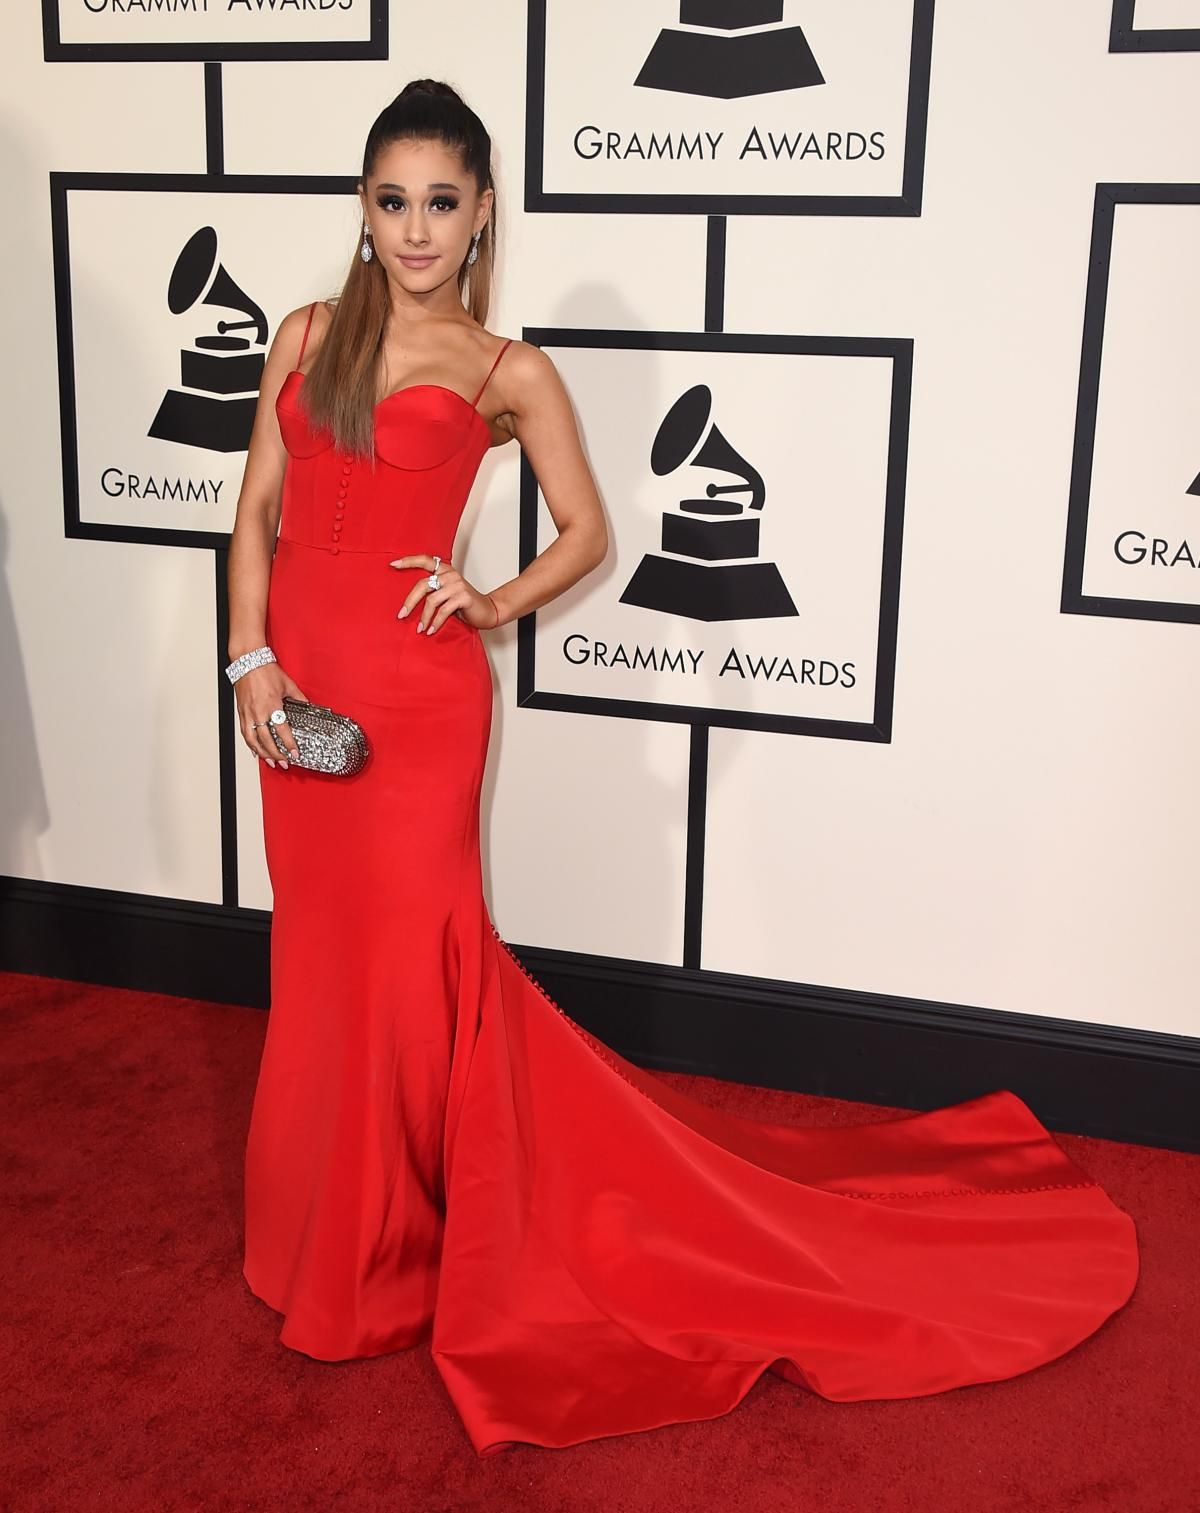 Tappeto Rosso Grande Ariana Grande Photos Grammys 2016 Best And Worst Red Carpet